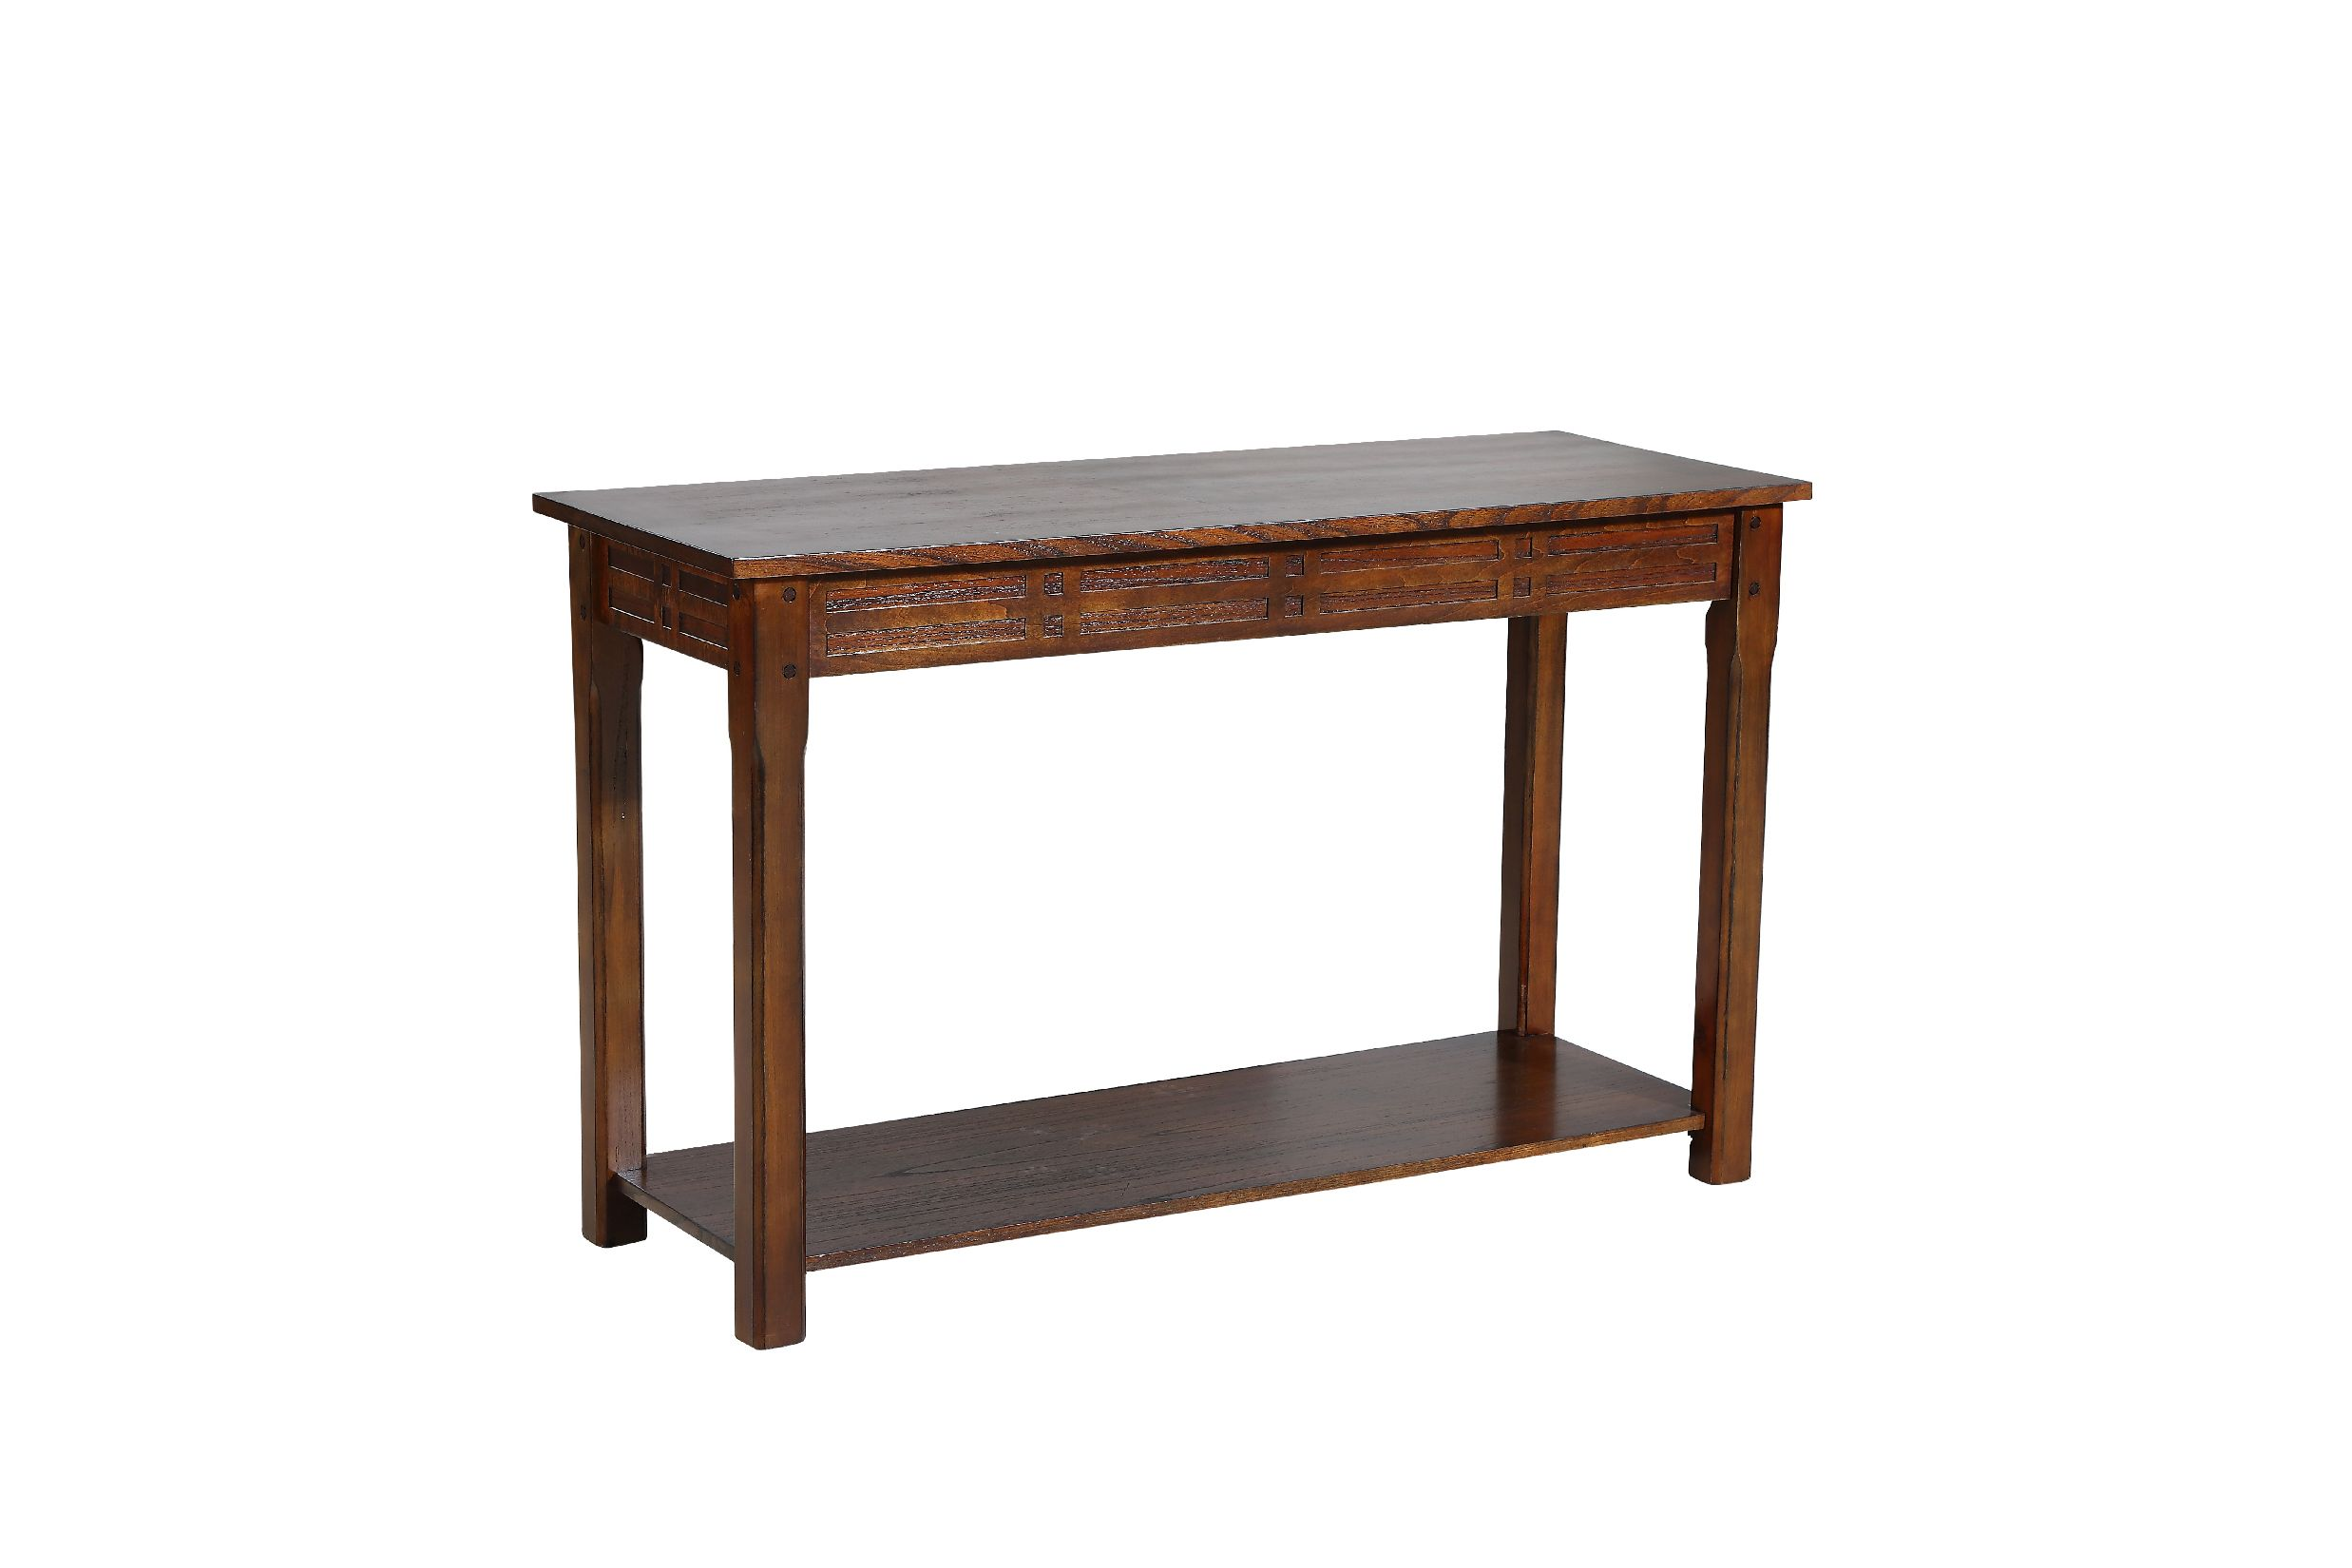 sofa table mollai collections coffeeendsofa accent tables barn wood furniture homesense coffee lamp shades for crystal lamps target curtain rods living room storage cabinets with